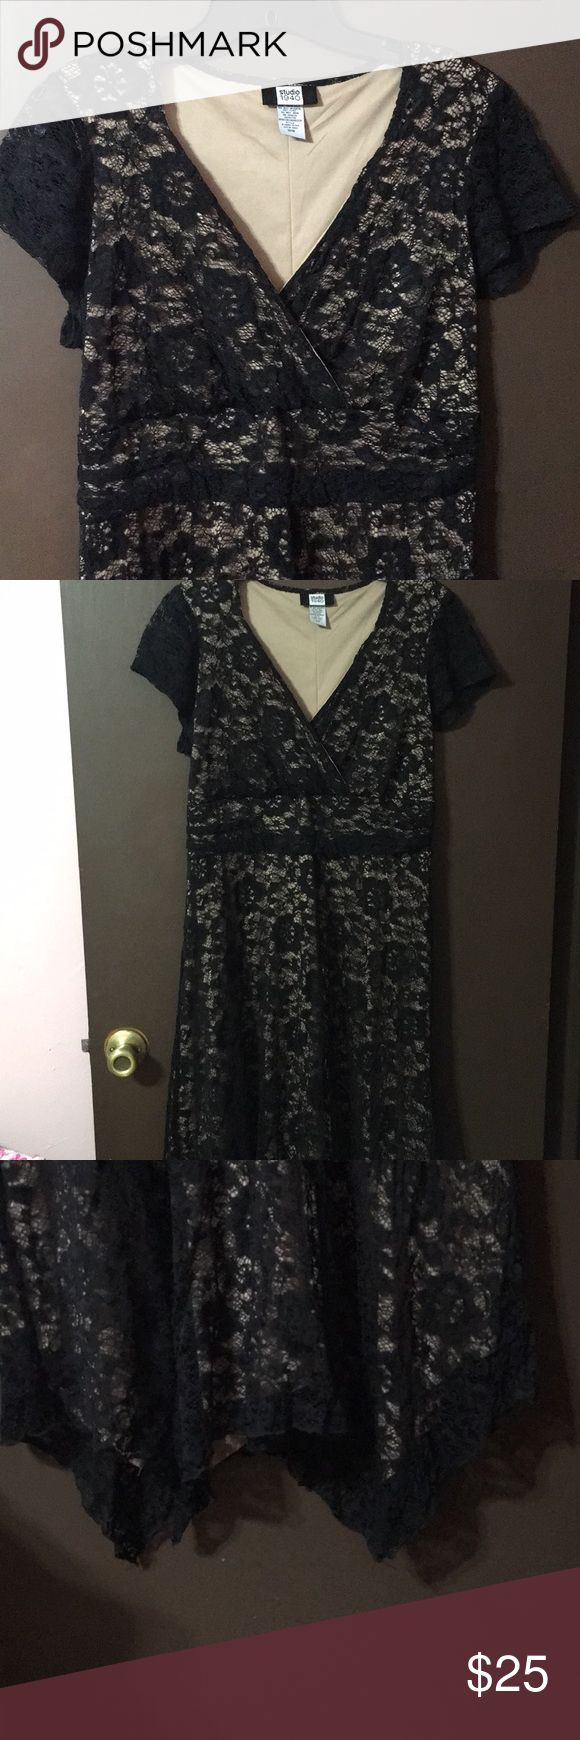 New🎉 cute dress Surplice Black and Tan lace dress with cap sleeves, handkerchief hem and tie waist. So pretty and feminine ❤️ size 16w Studio 1940 Dresses